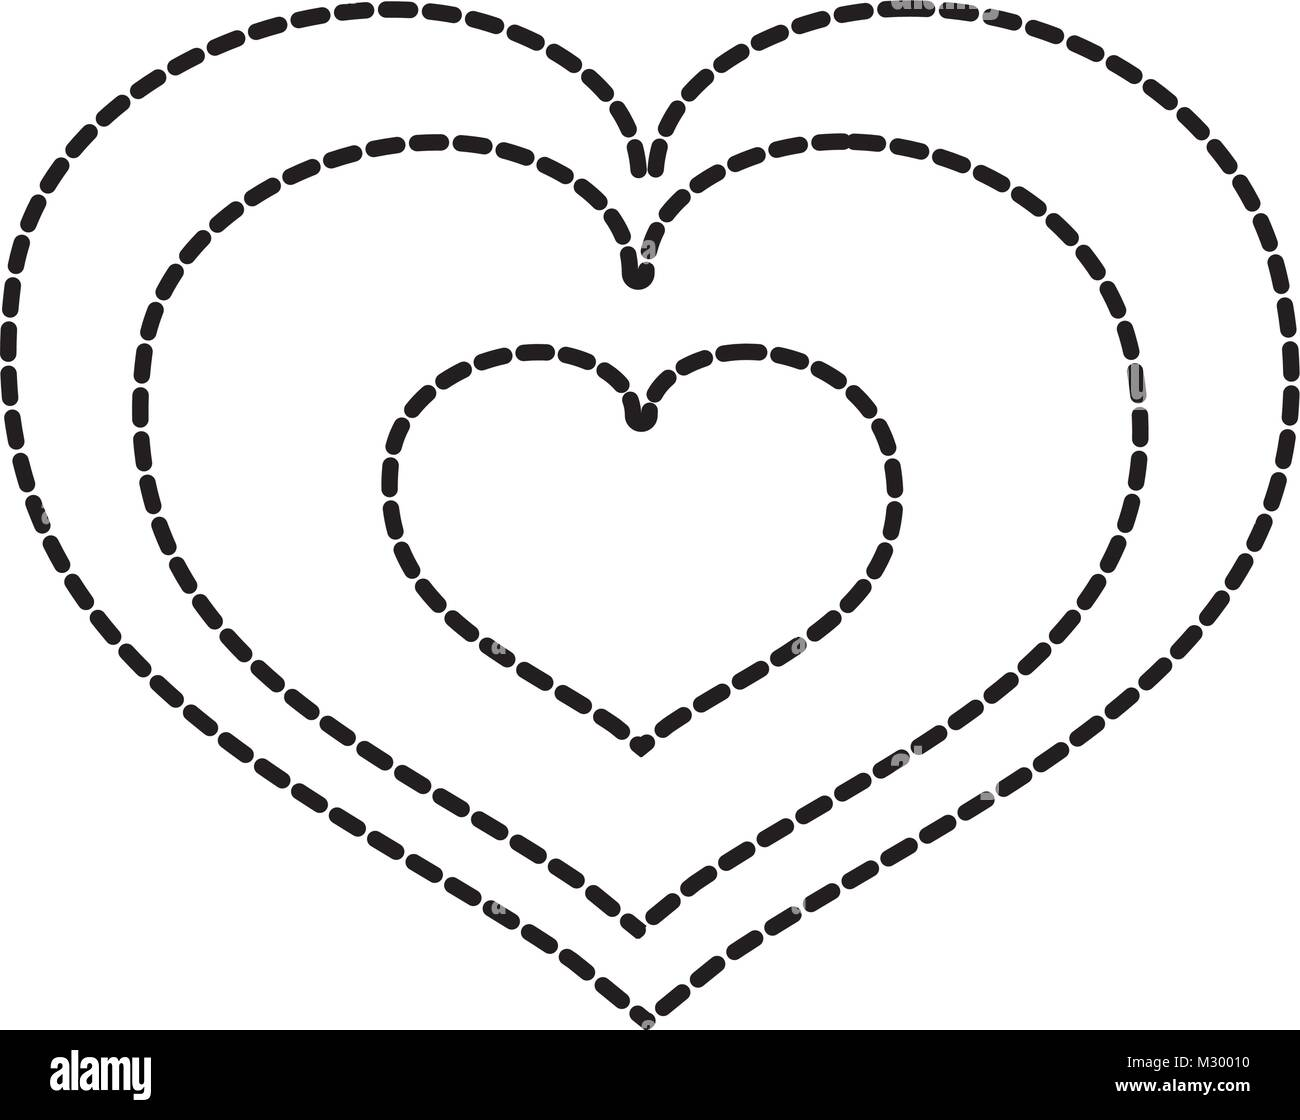 Heart Black and White Stock Photos & Images - Alamy